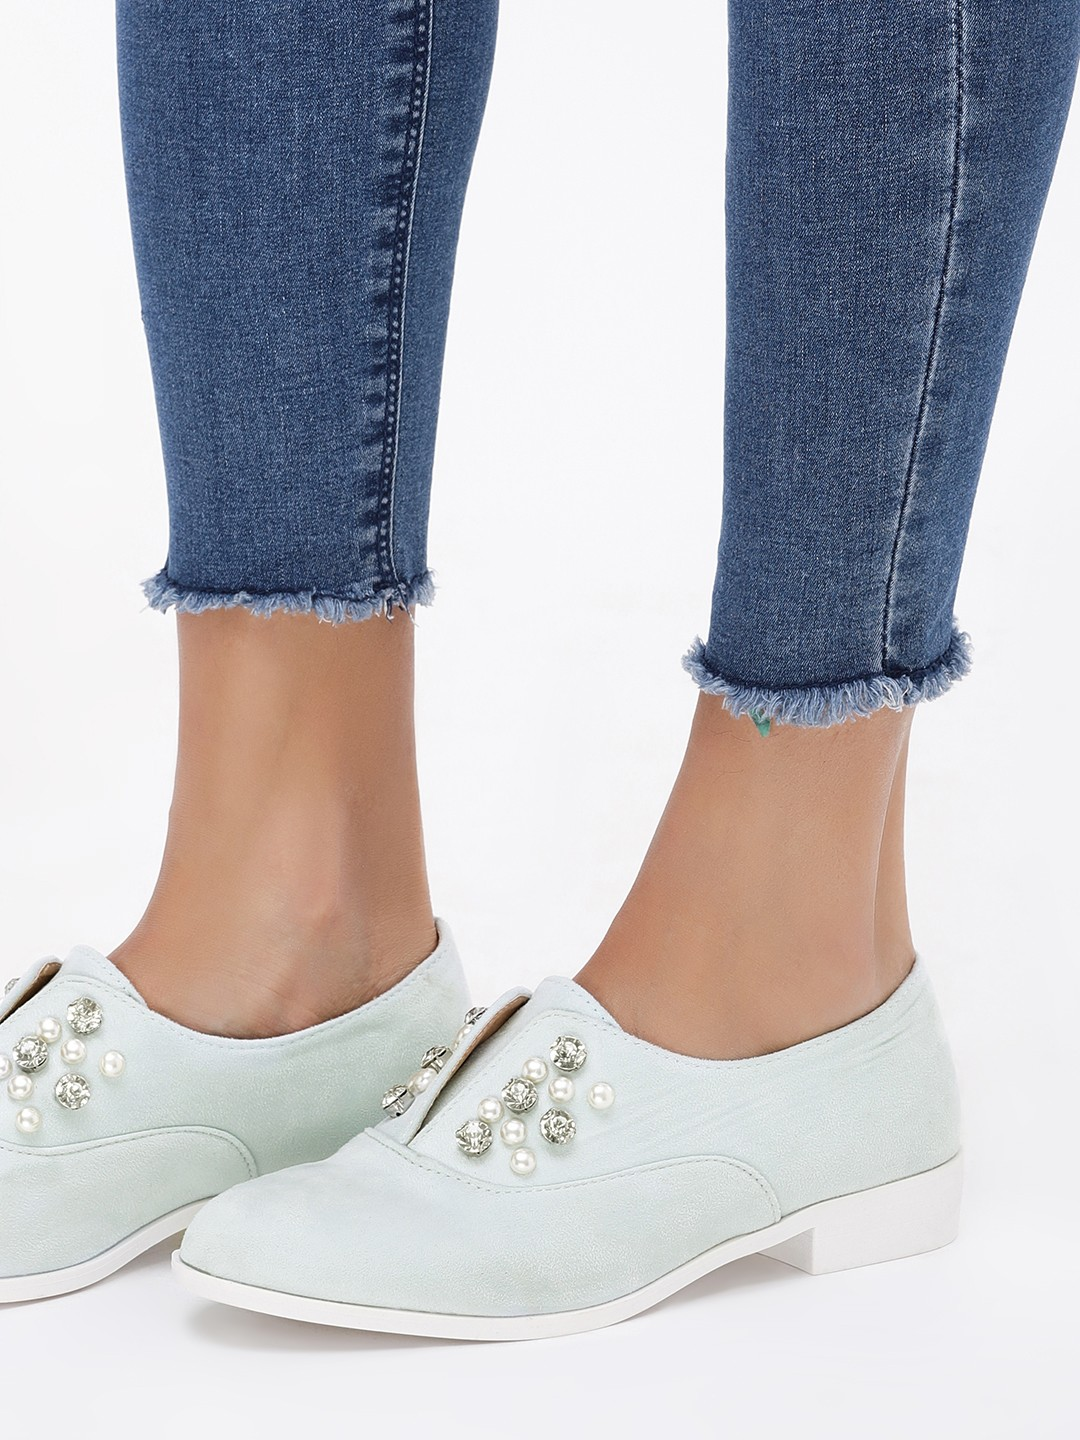 Sole Story PALE BLUE Pearl Embellished Laceless Brogues 1